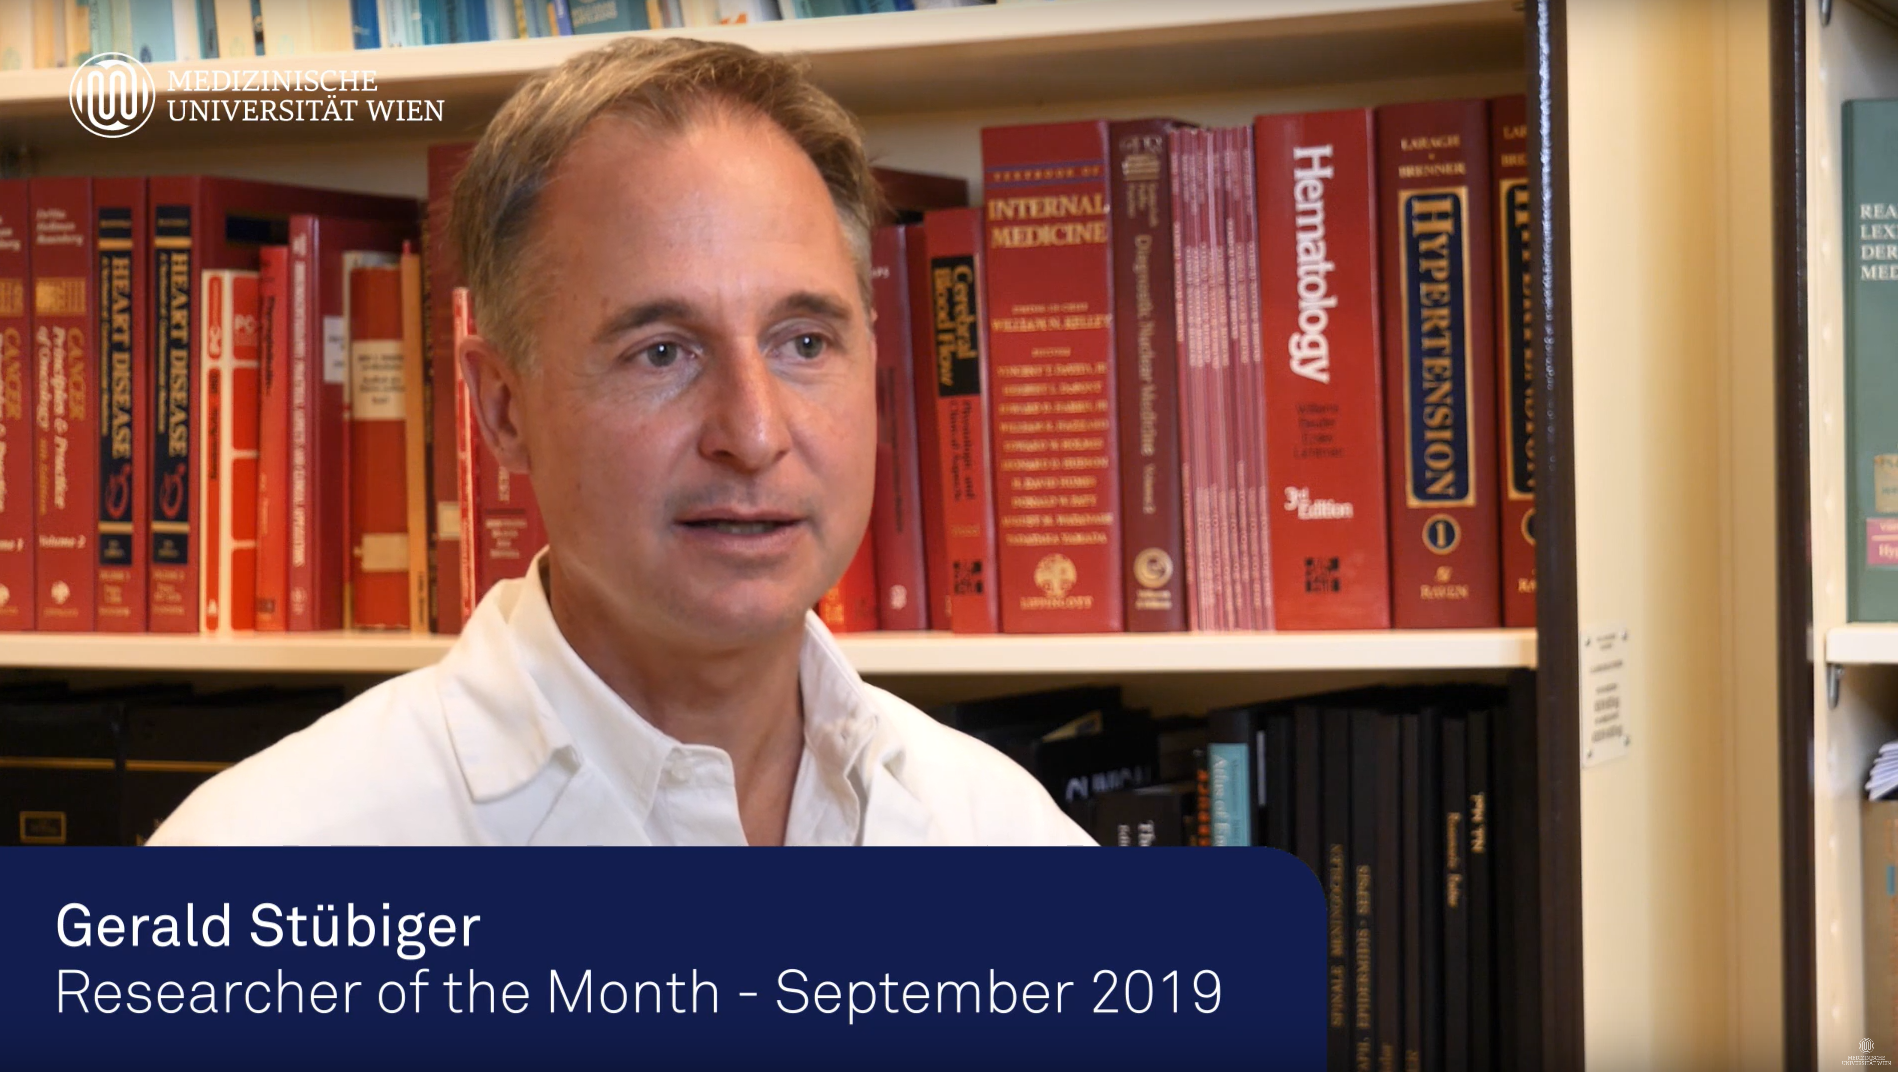 MedUni Wien - Researcher of the Month | September 2019: Dr. Stübiger